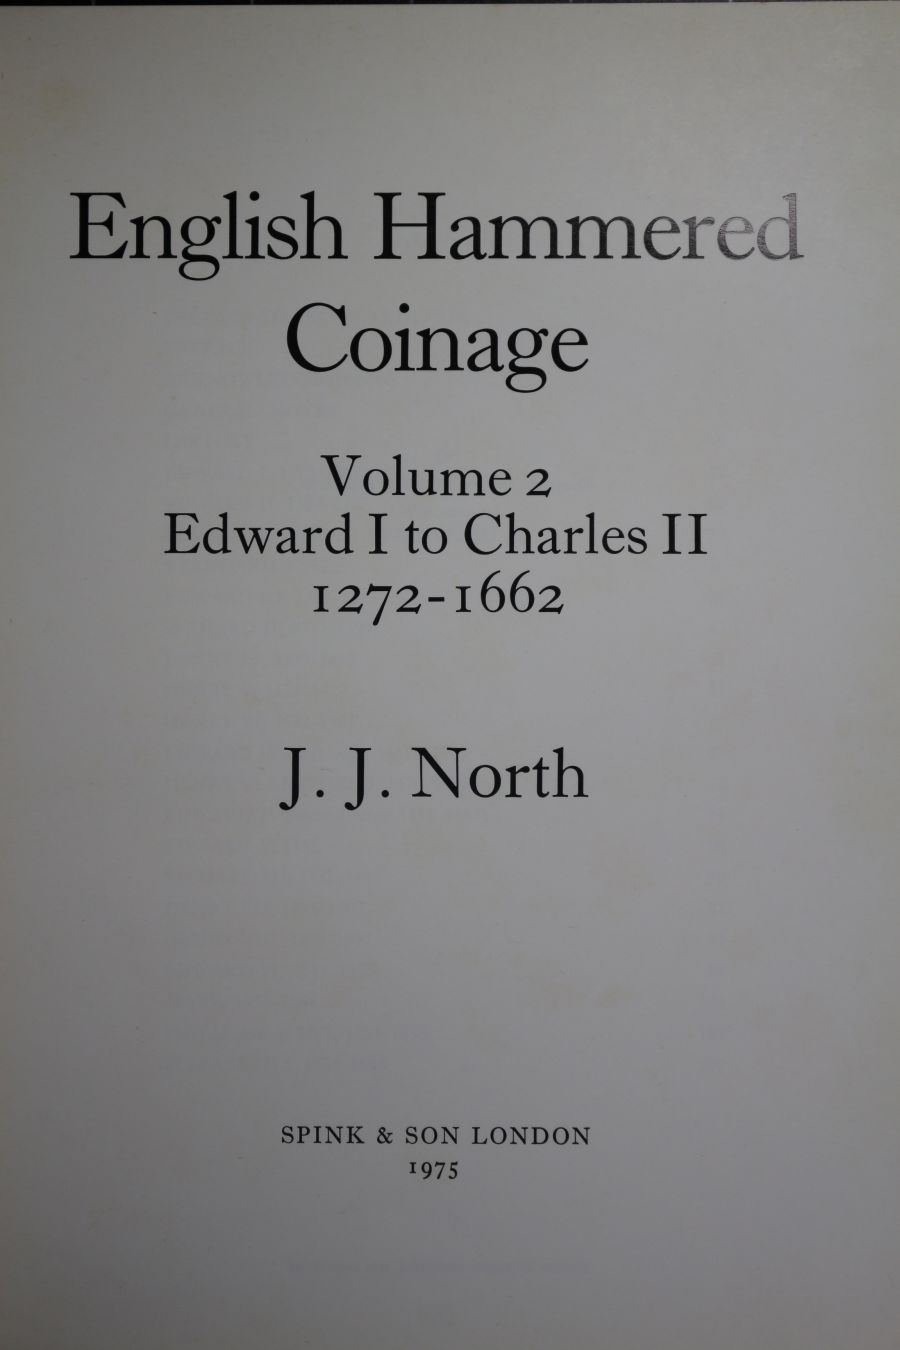 English hammered coinage by J.J. North, Volume 2, Revised second edition, Brown cloth